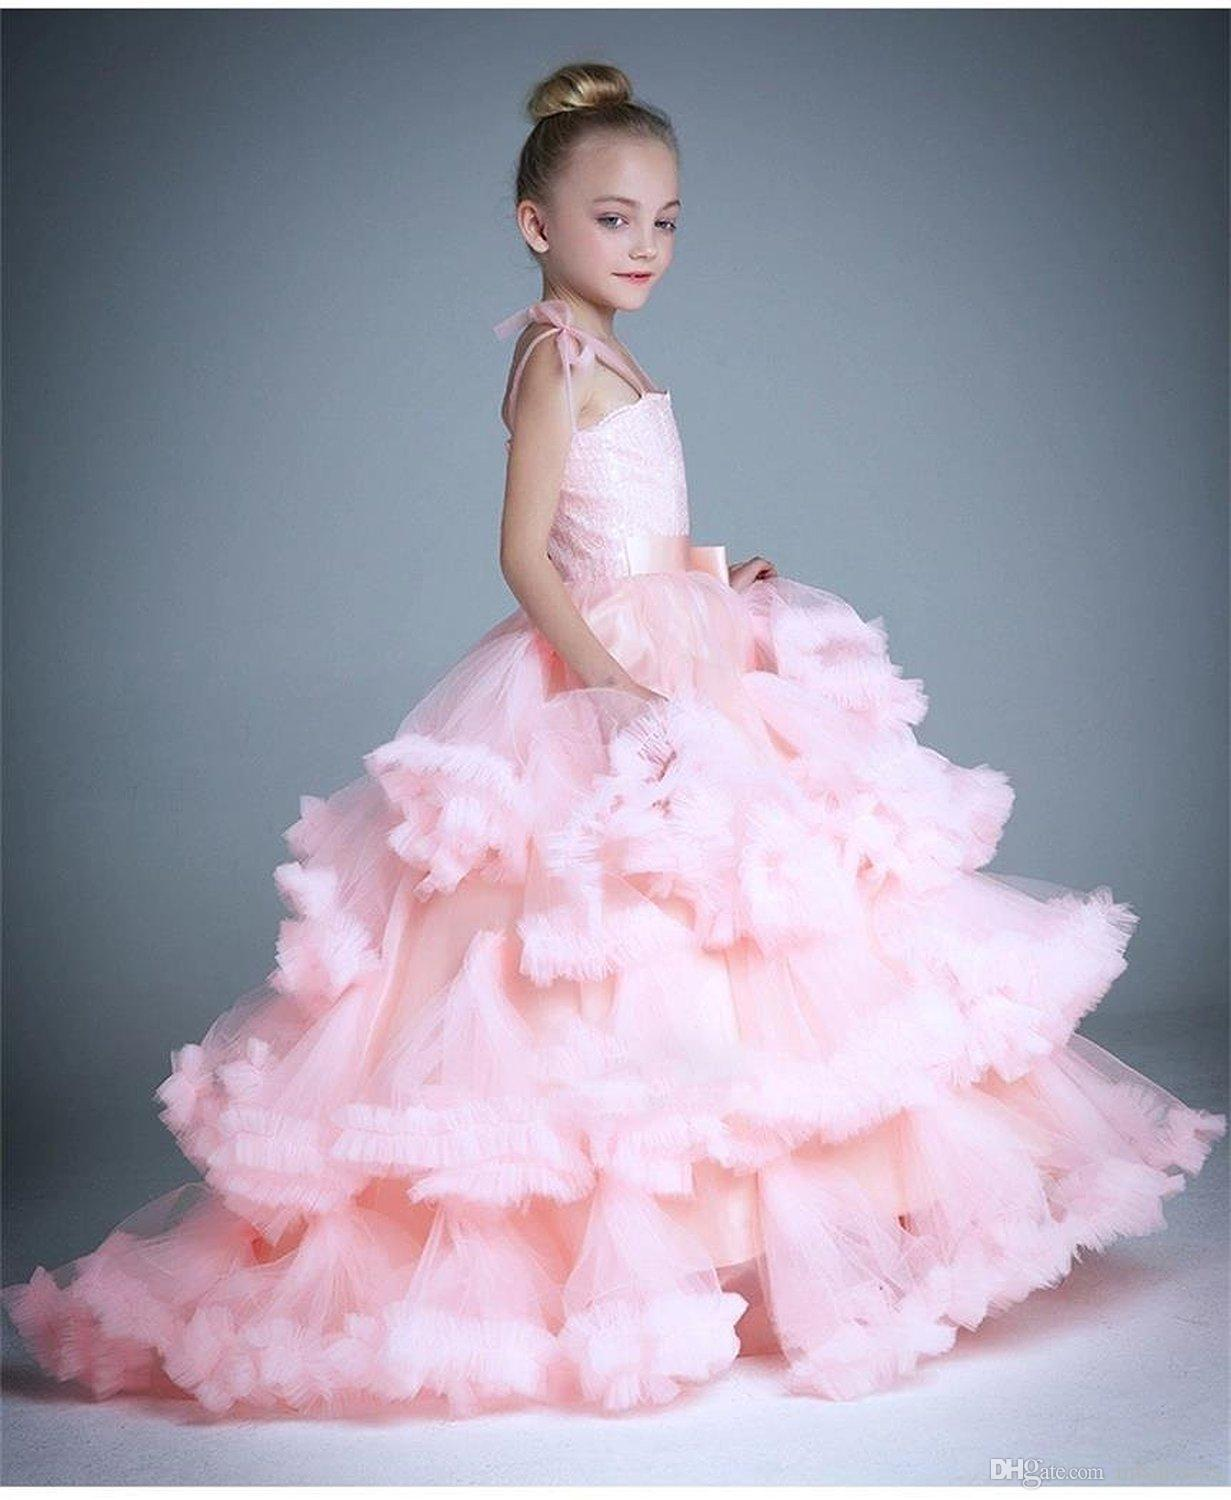 Cloud little flower girls dresses for weddings baby party frocks sexy children Dress kids puffy prom party dresses 2017 girls pageant dress